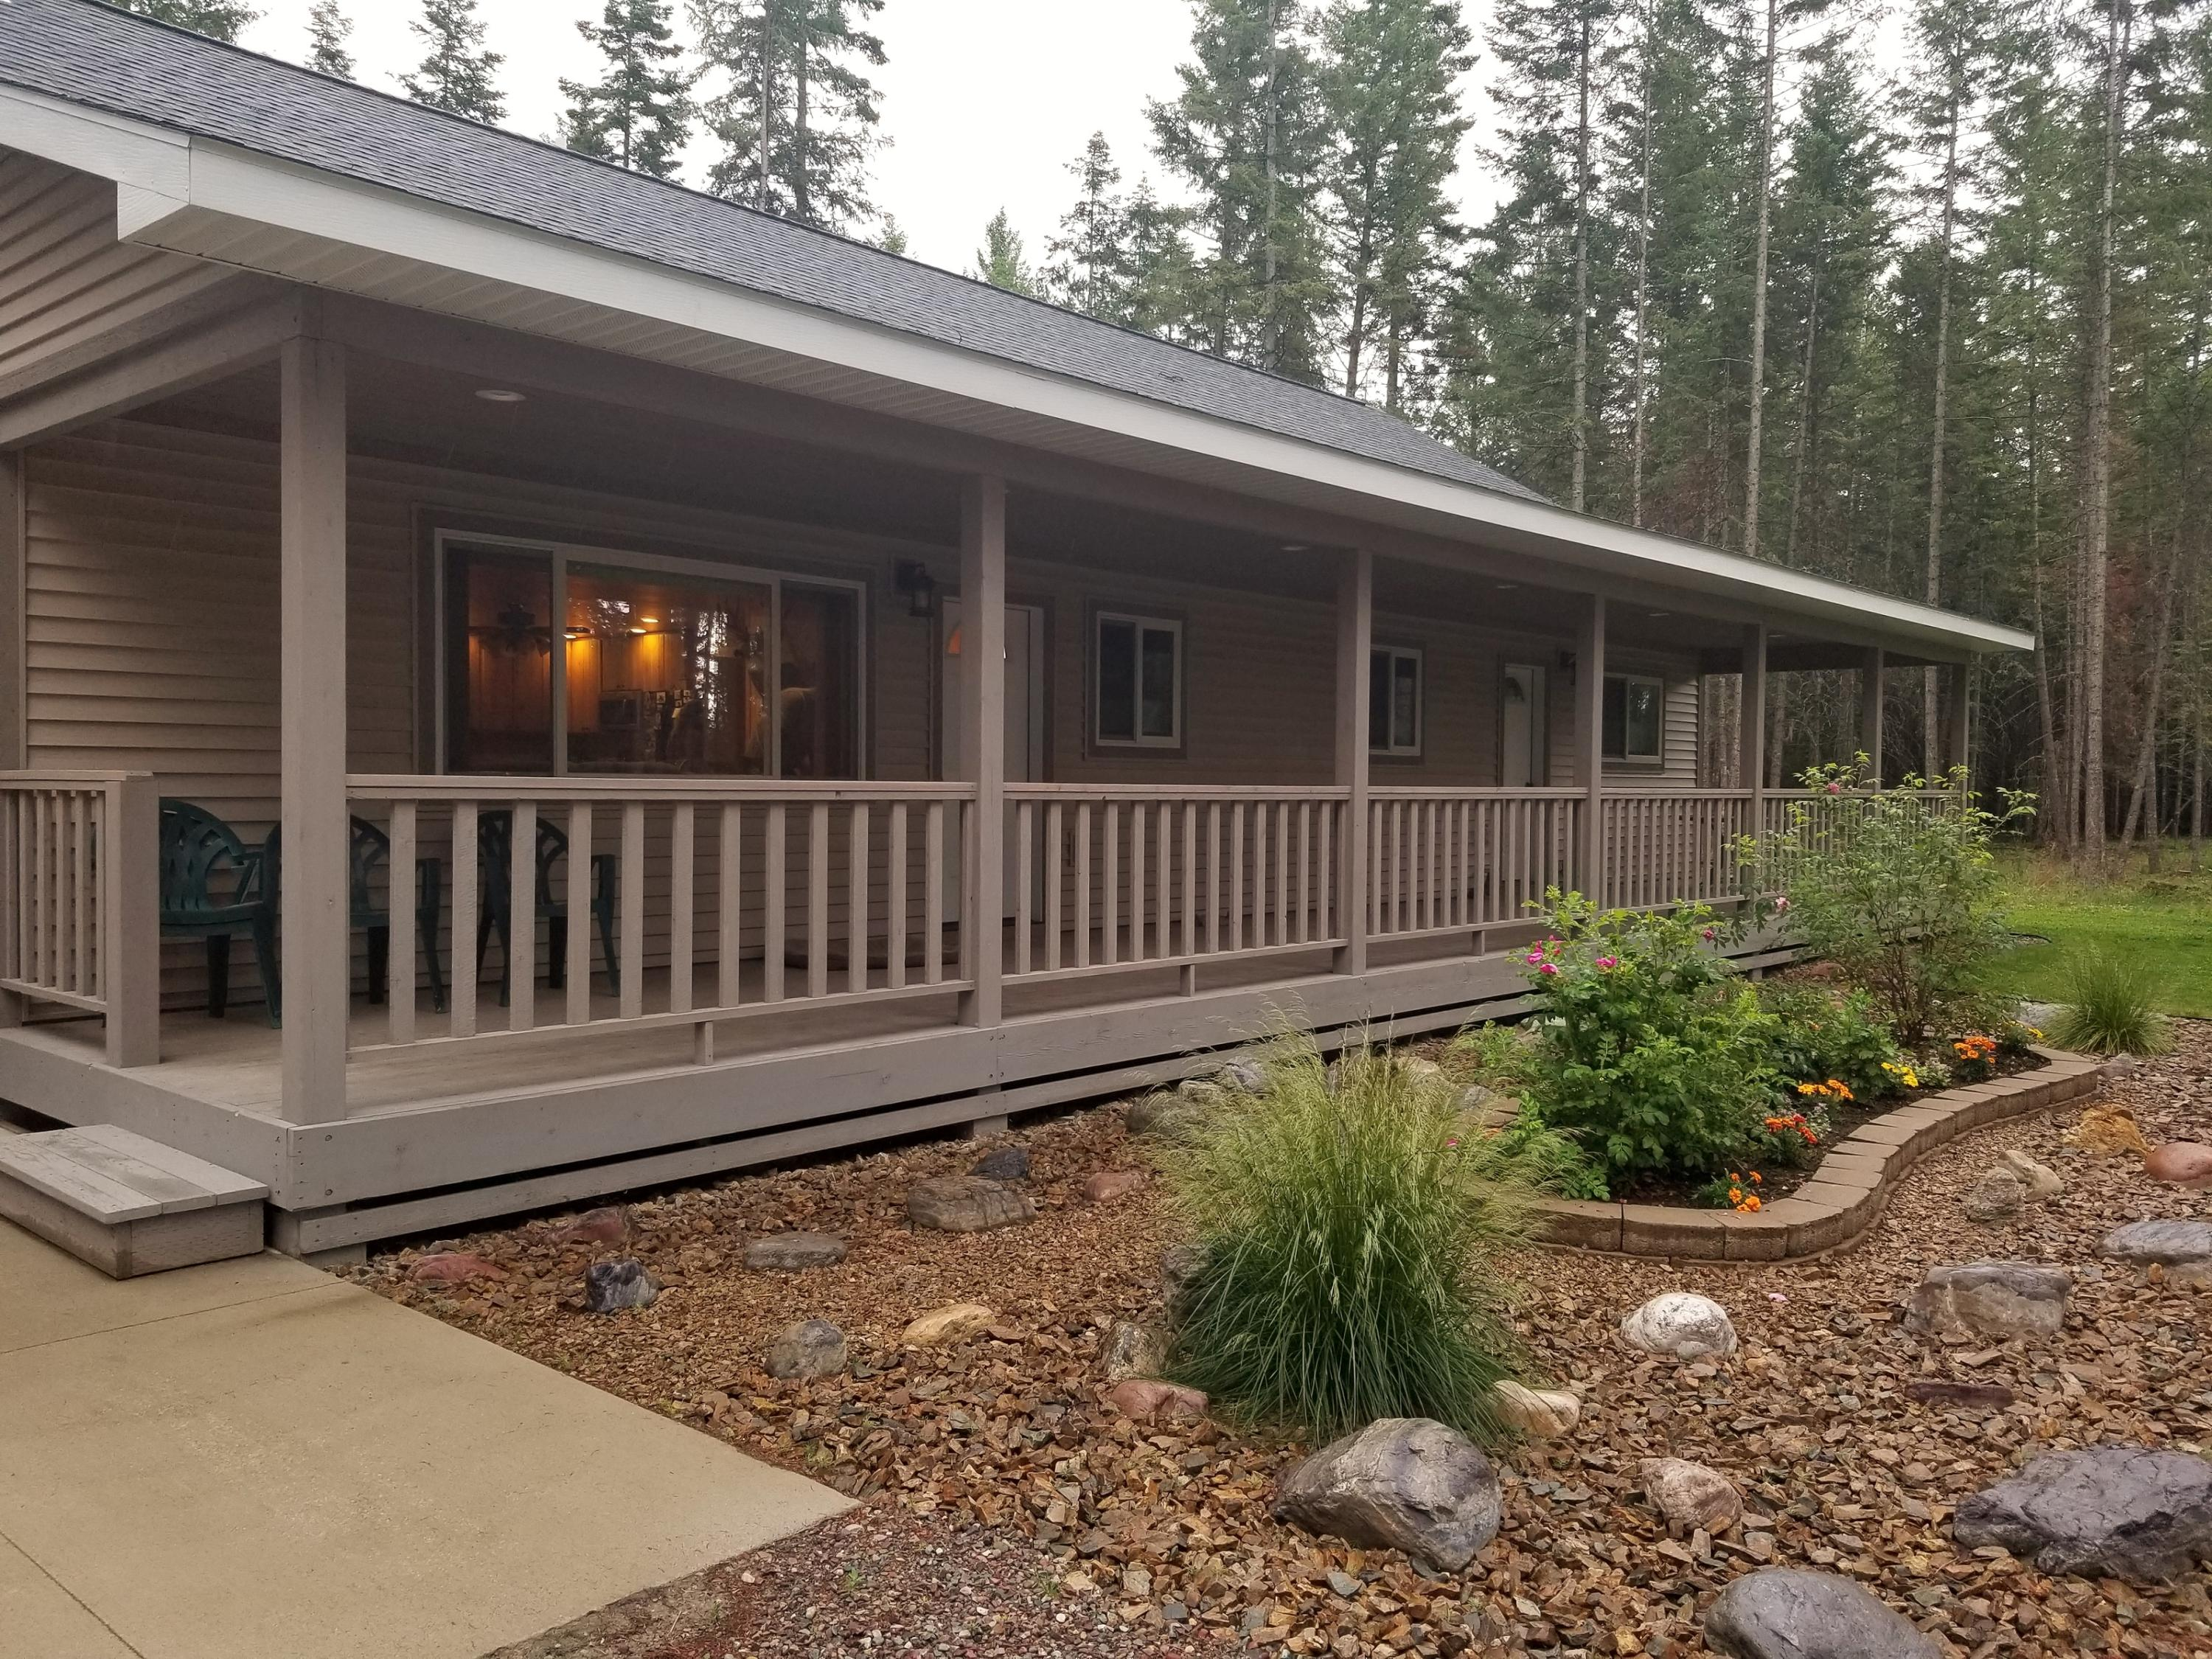 Home for Sale at 2931 Foothill Road in Kalispell, Montana